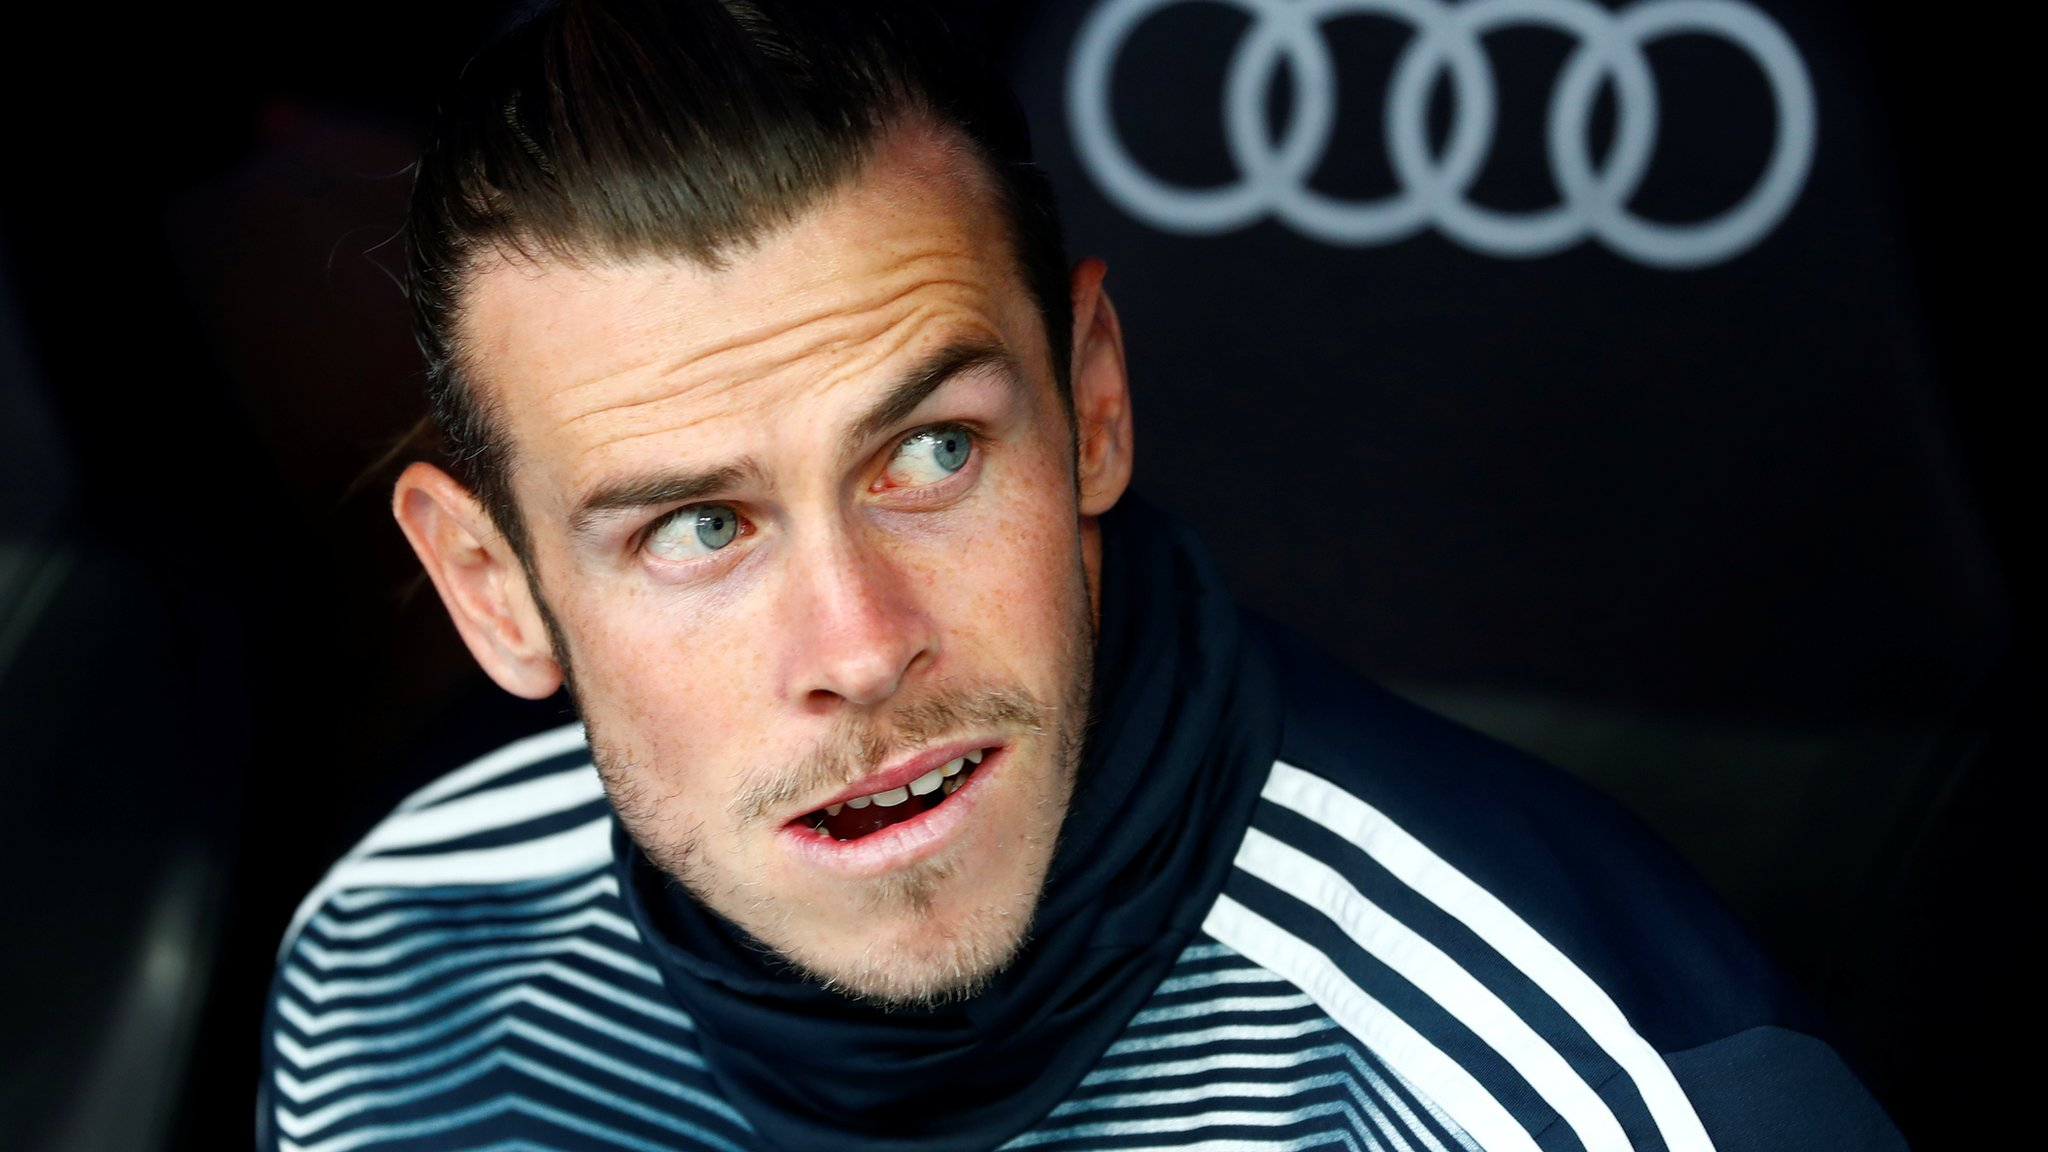 Gareth Bale does not acknowledge fans in final Real Madrid game